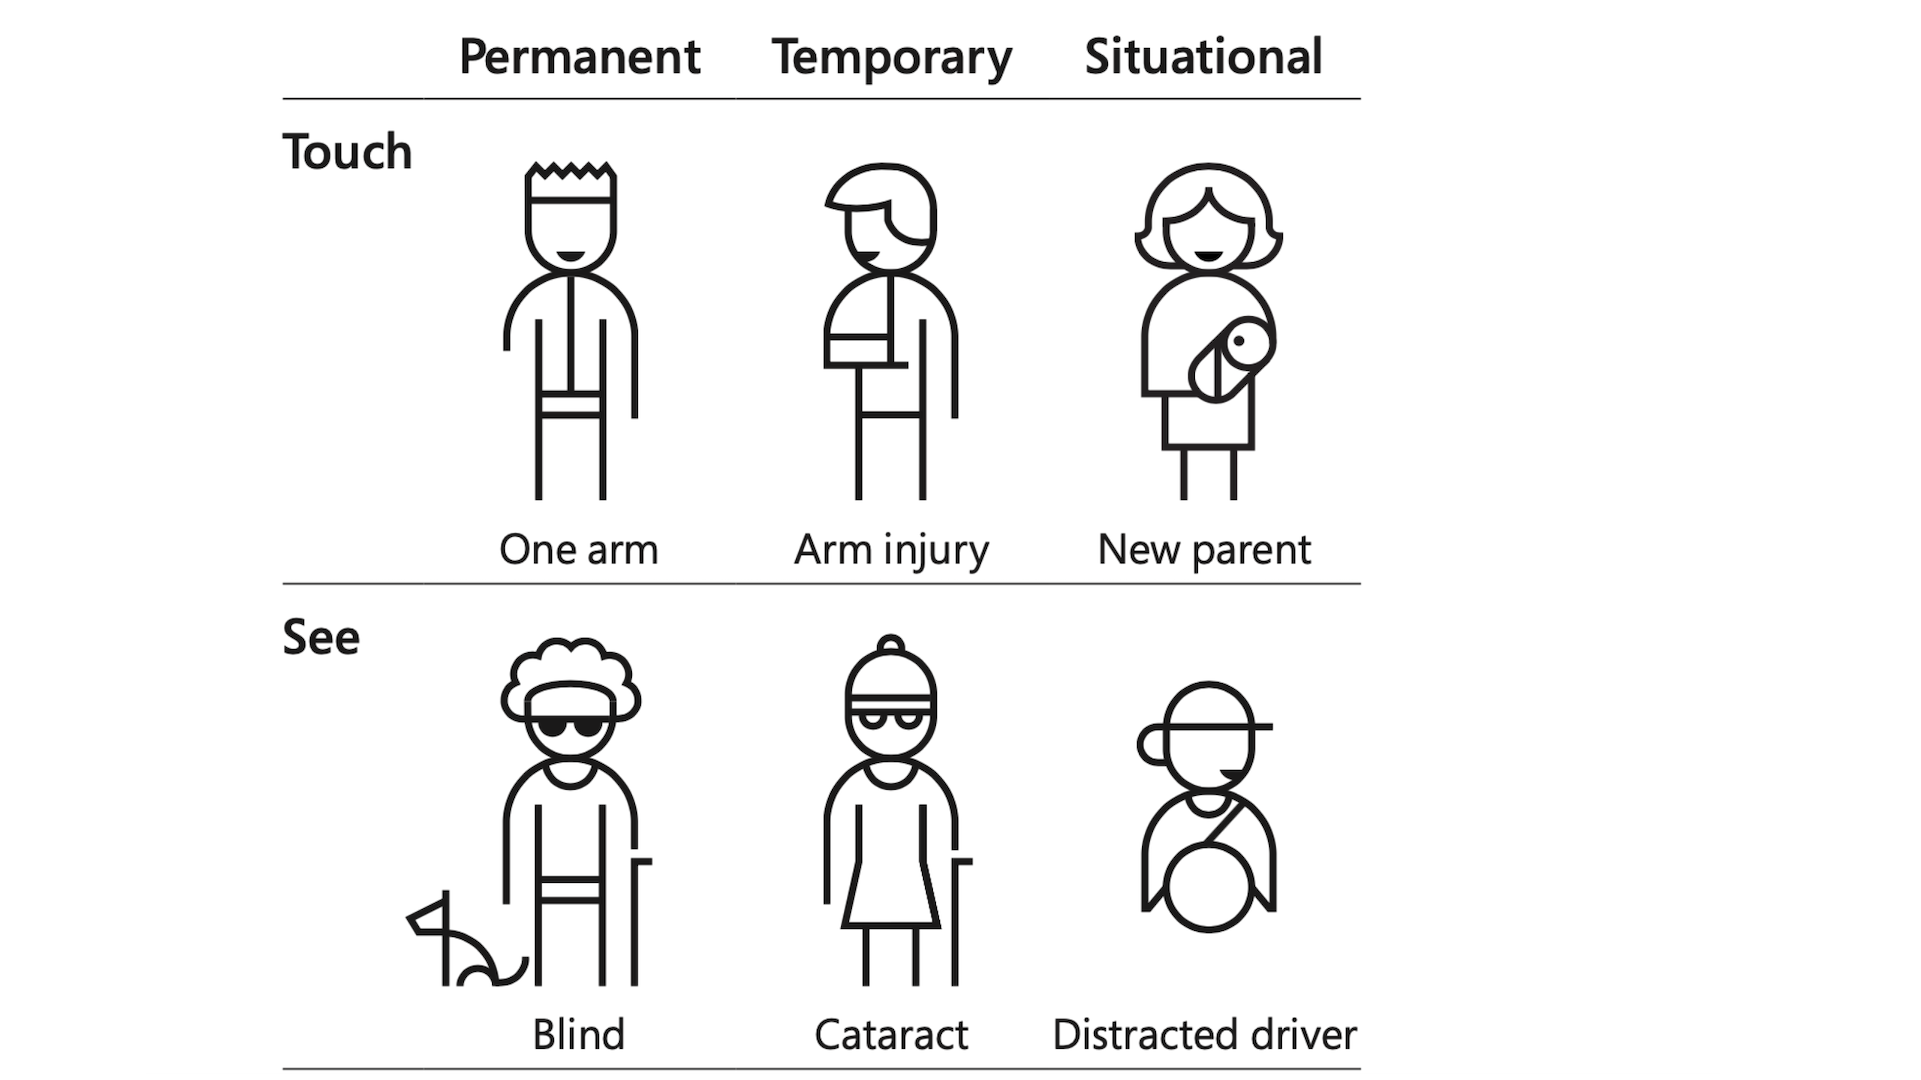 Black and white cartoons of people from Microsoft's inclusion toolkit. There are two rows of three people, each with permanent, temporary, and situational disabilities. In the first row, one person has one arm, the next has an arm injury, and the third is holding an infant. In the second row, one person is blind, the next has cataracts, and the third is a distracted driver.